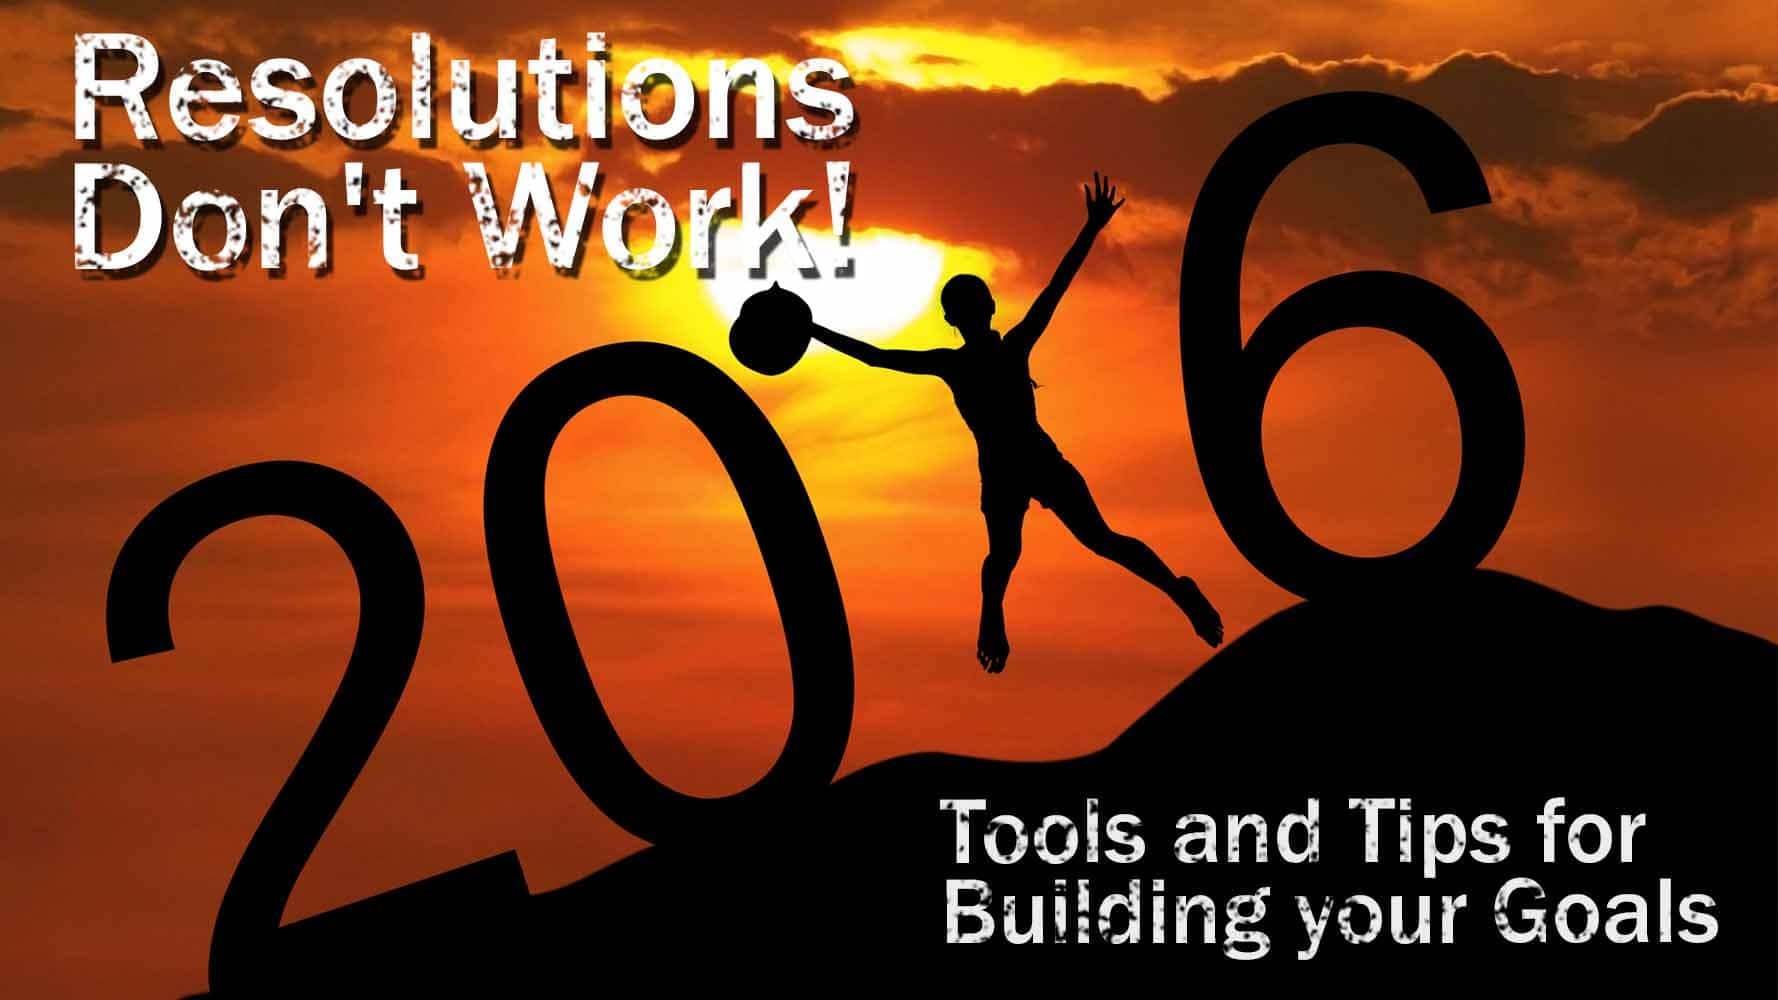 resolutions don t work tools and tips for building your goals resolutions don t work tools and tips for building your goals travel life experiences